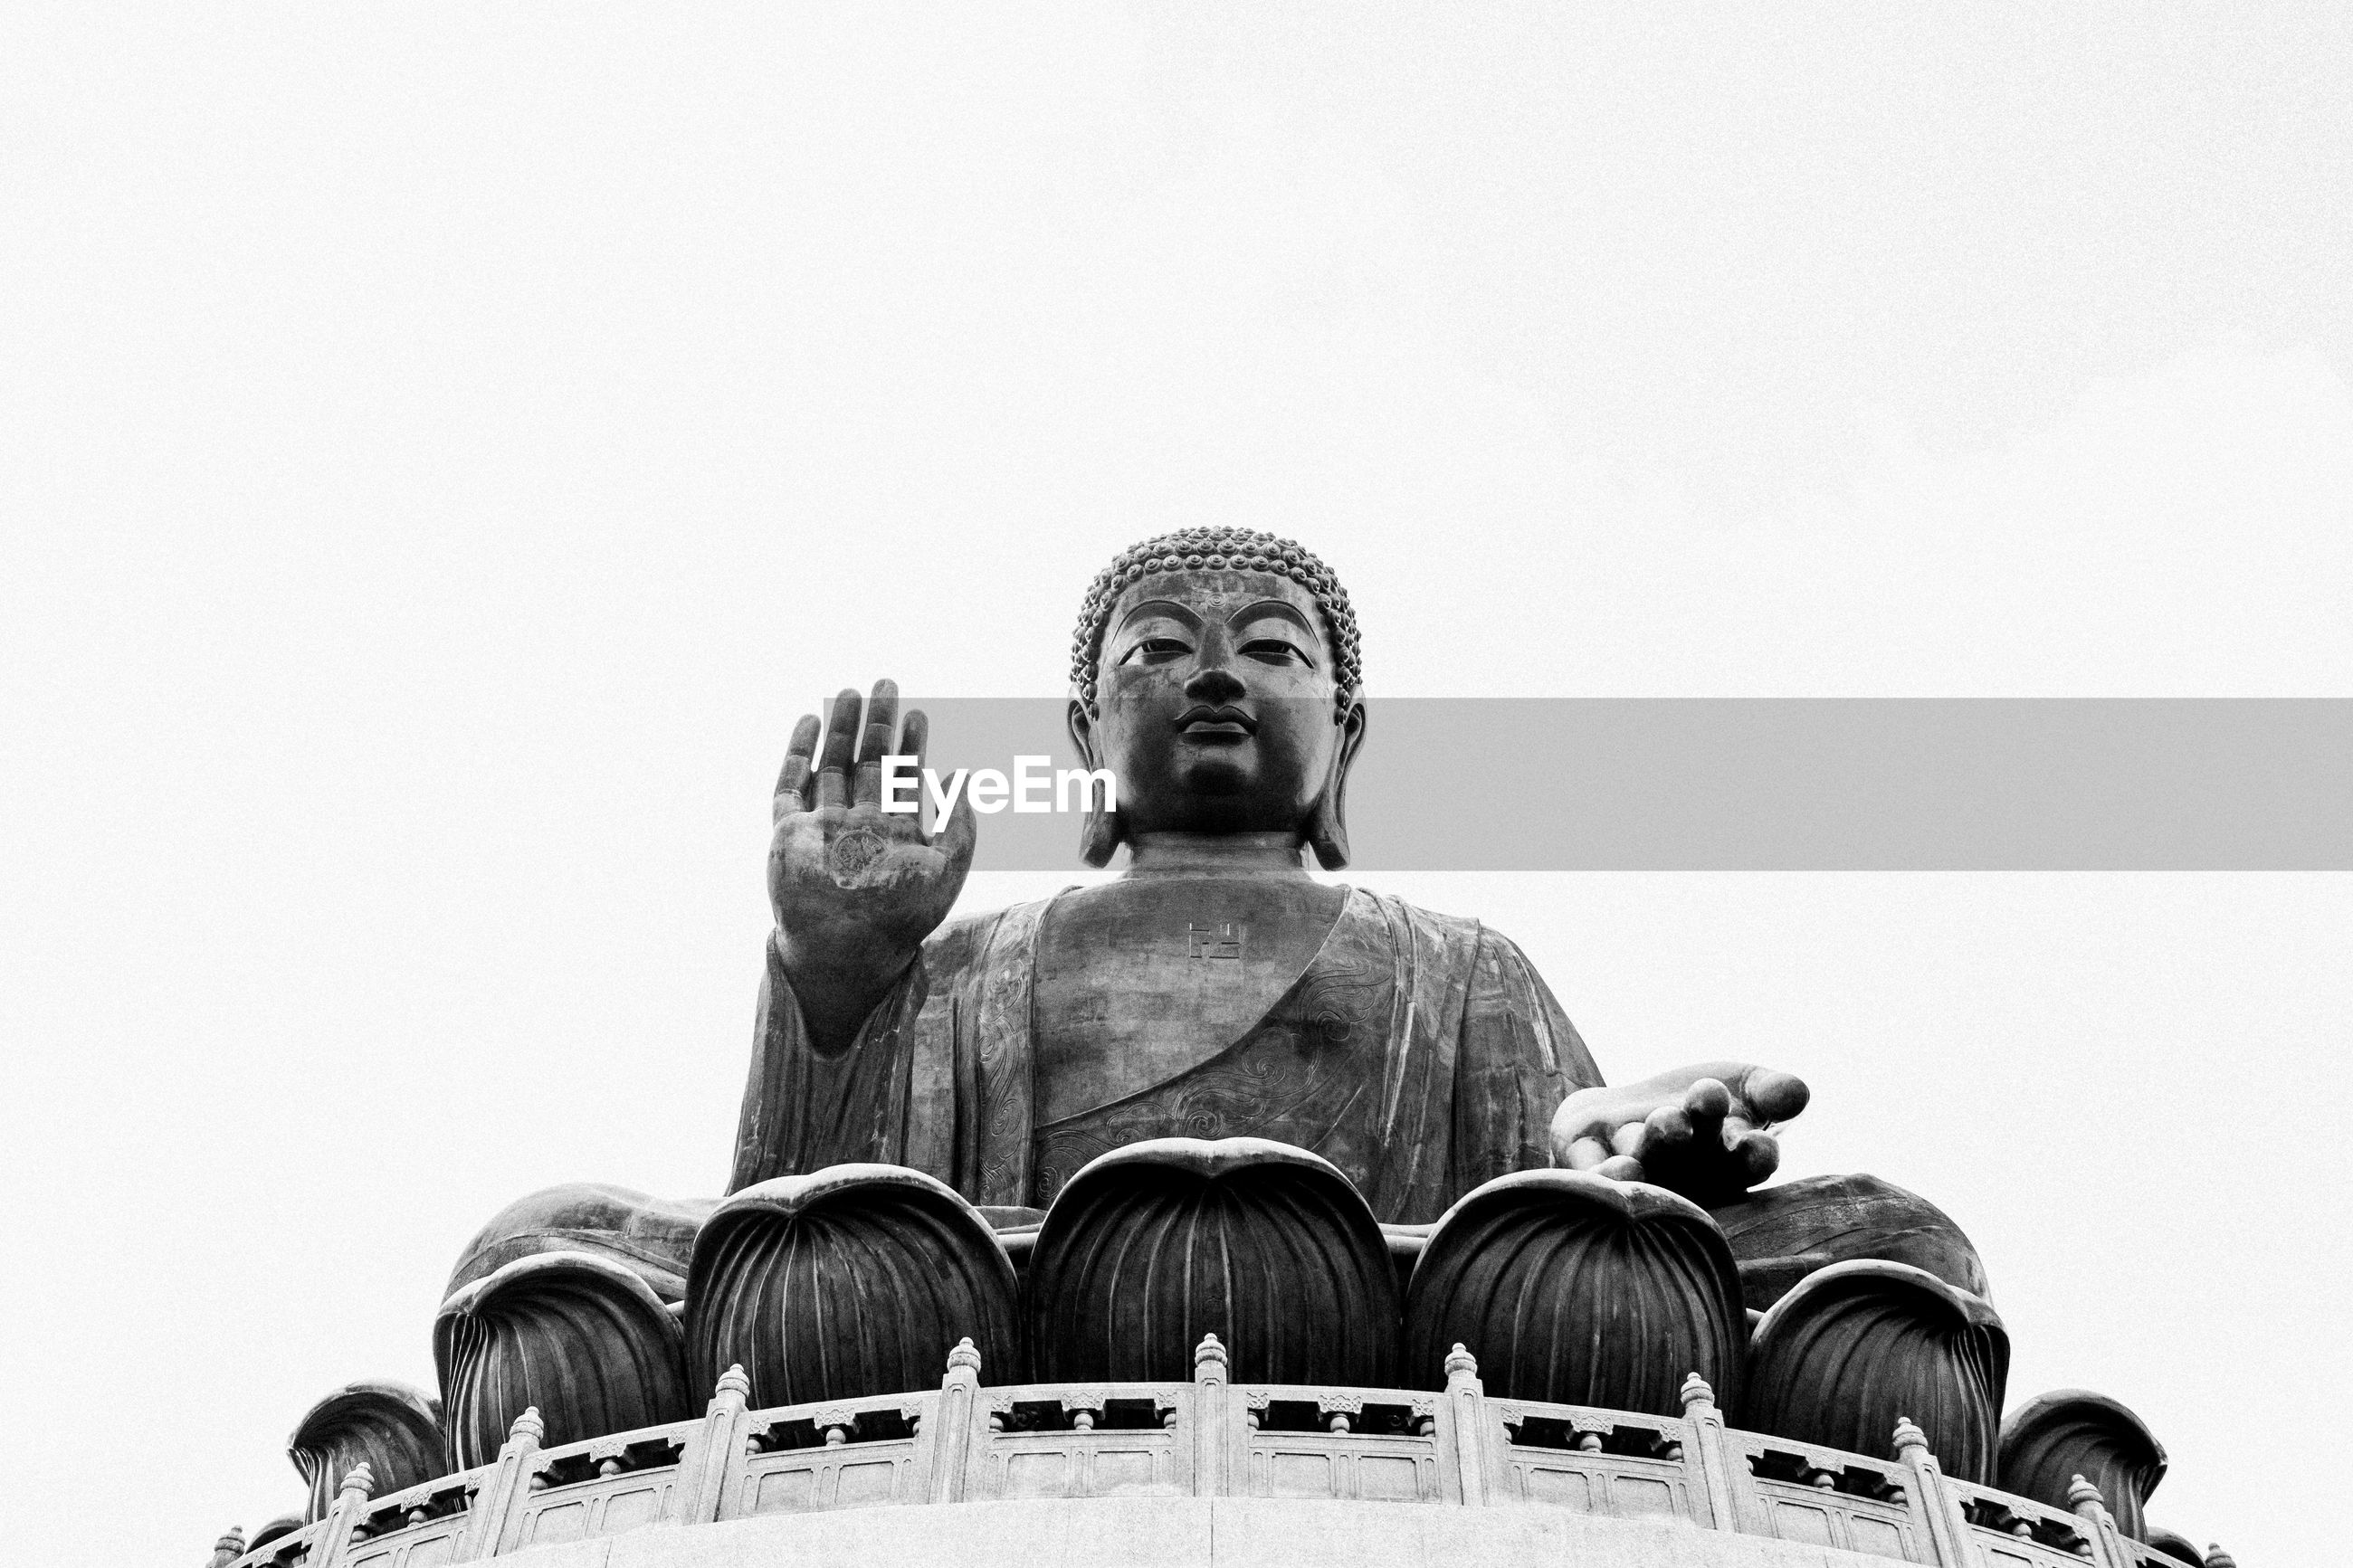 Low angle view of statue against temple against clear sky